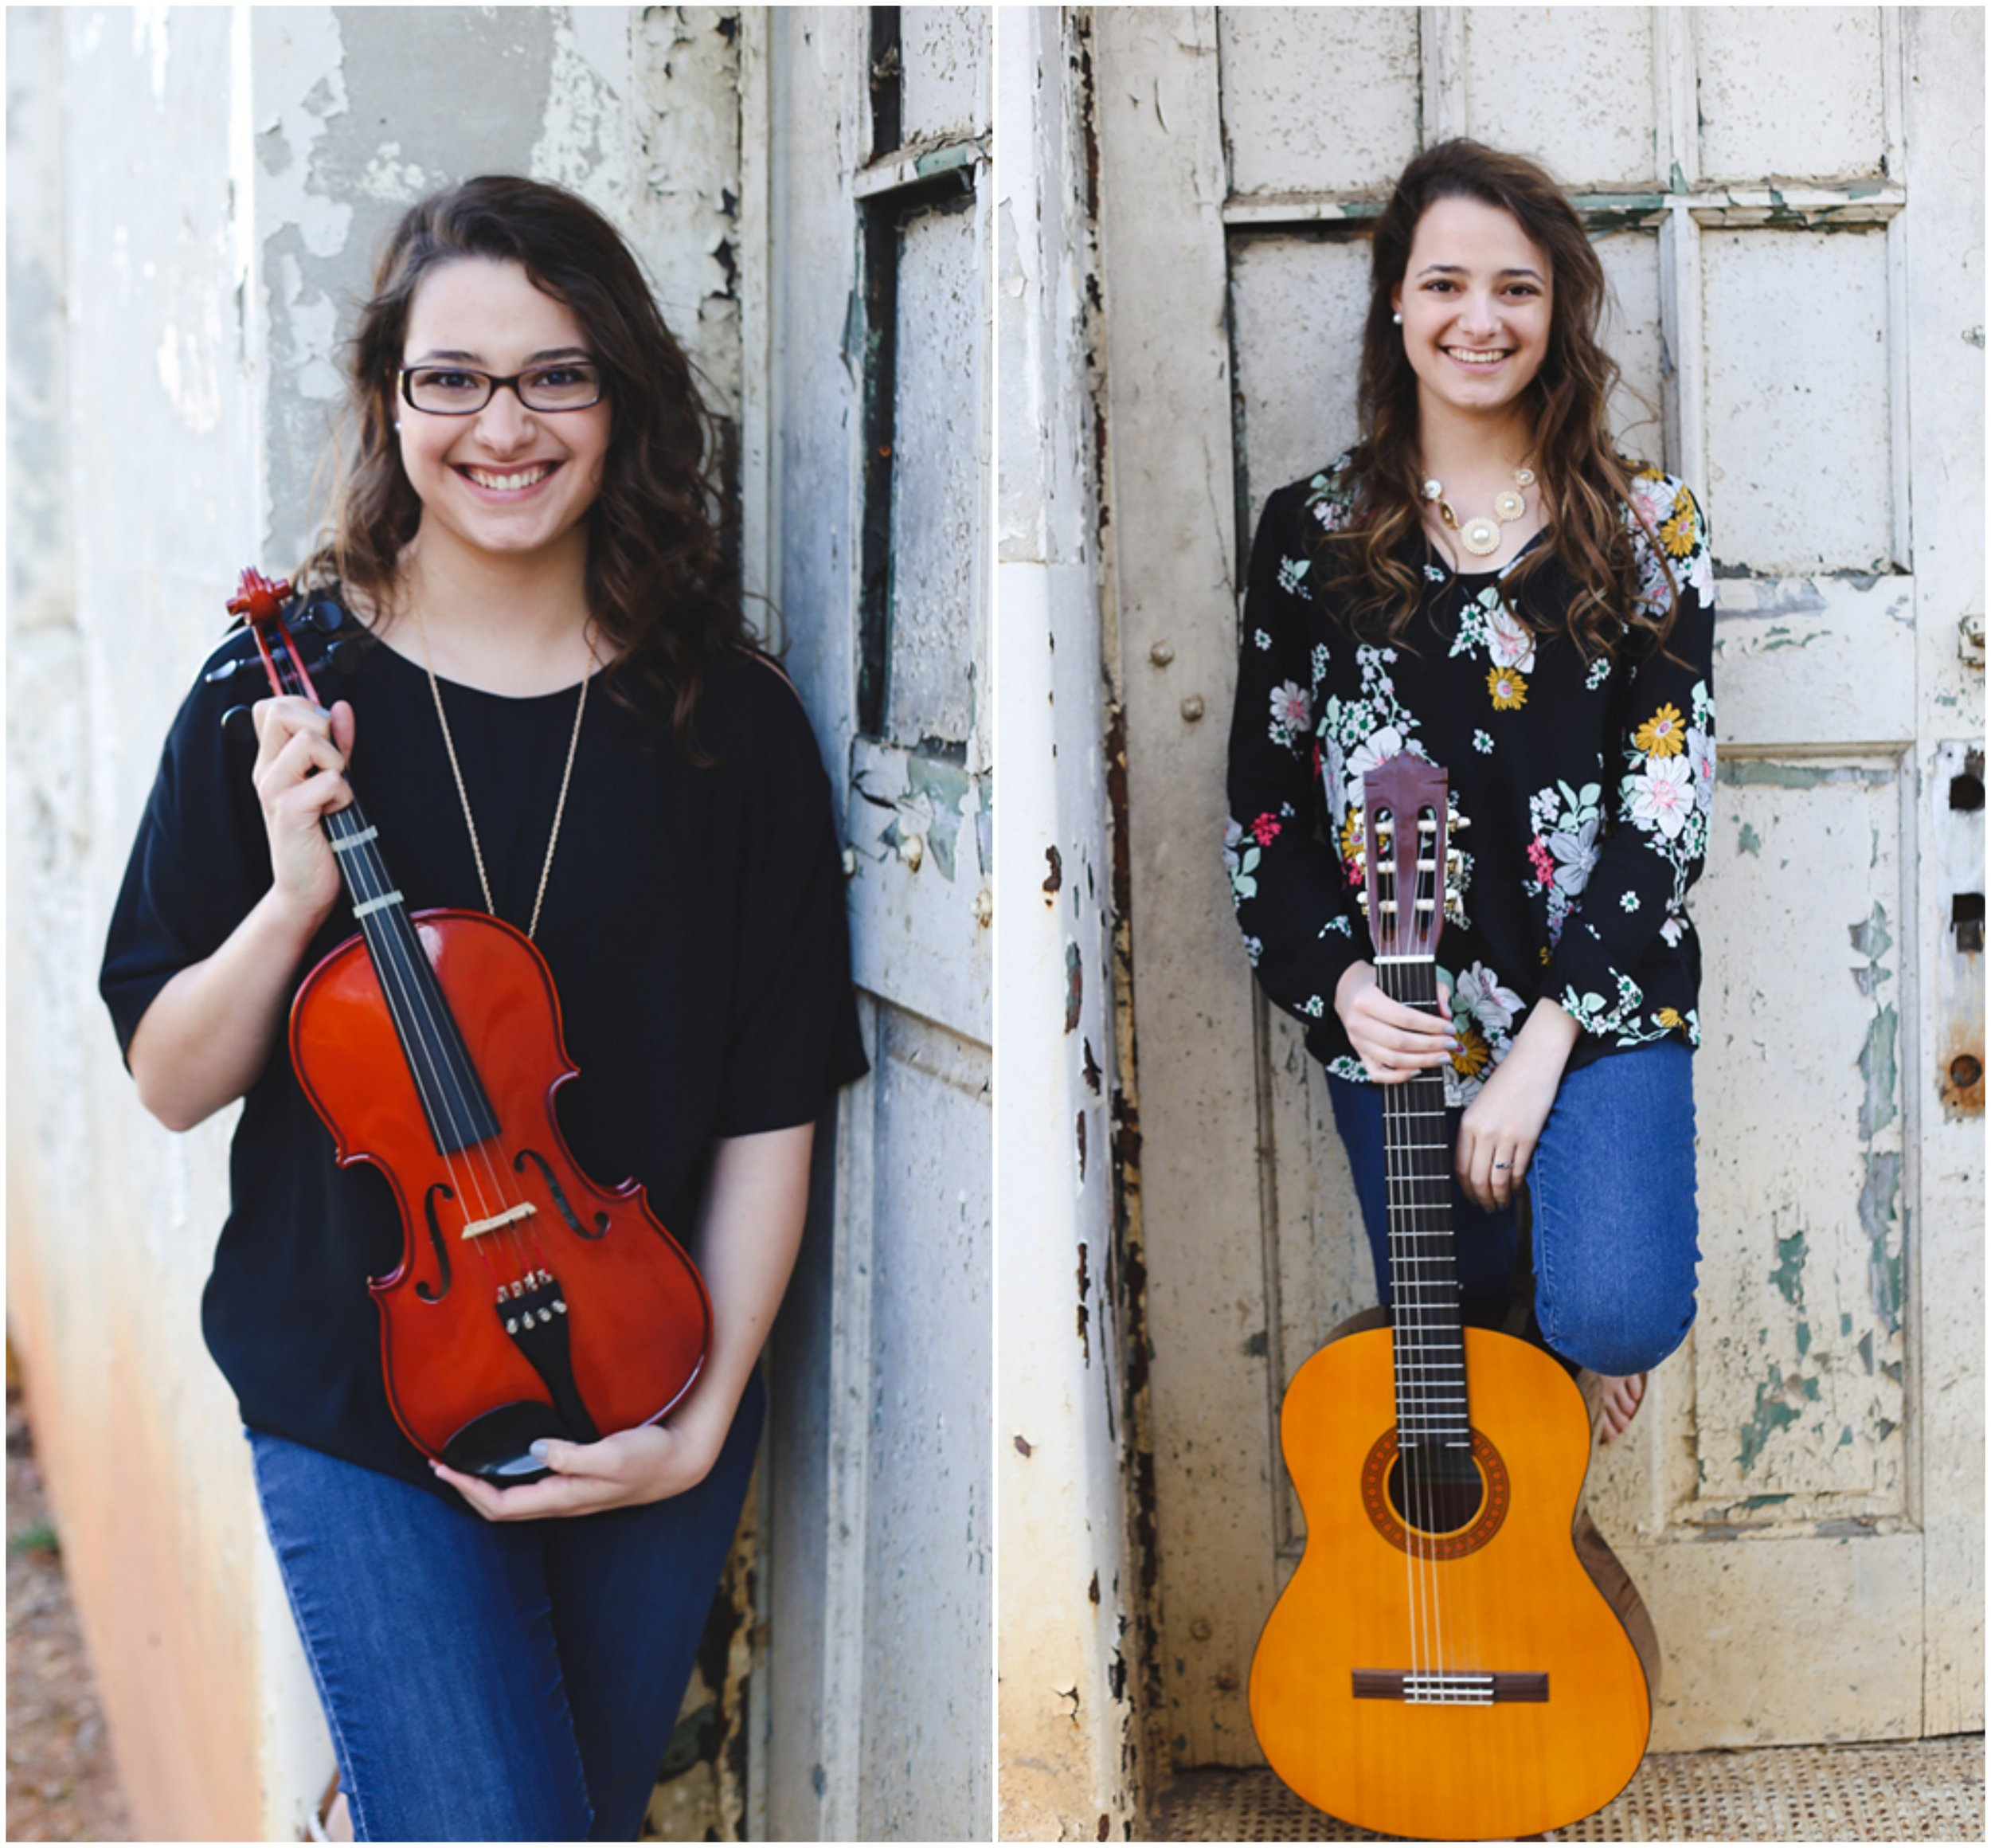 Left: Rachel with her violin; Right: Nicole with her guitar